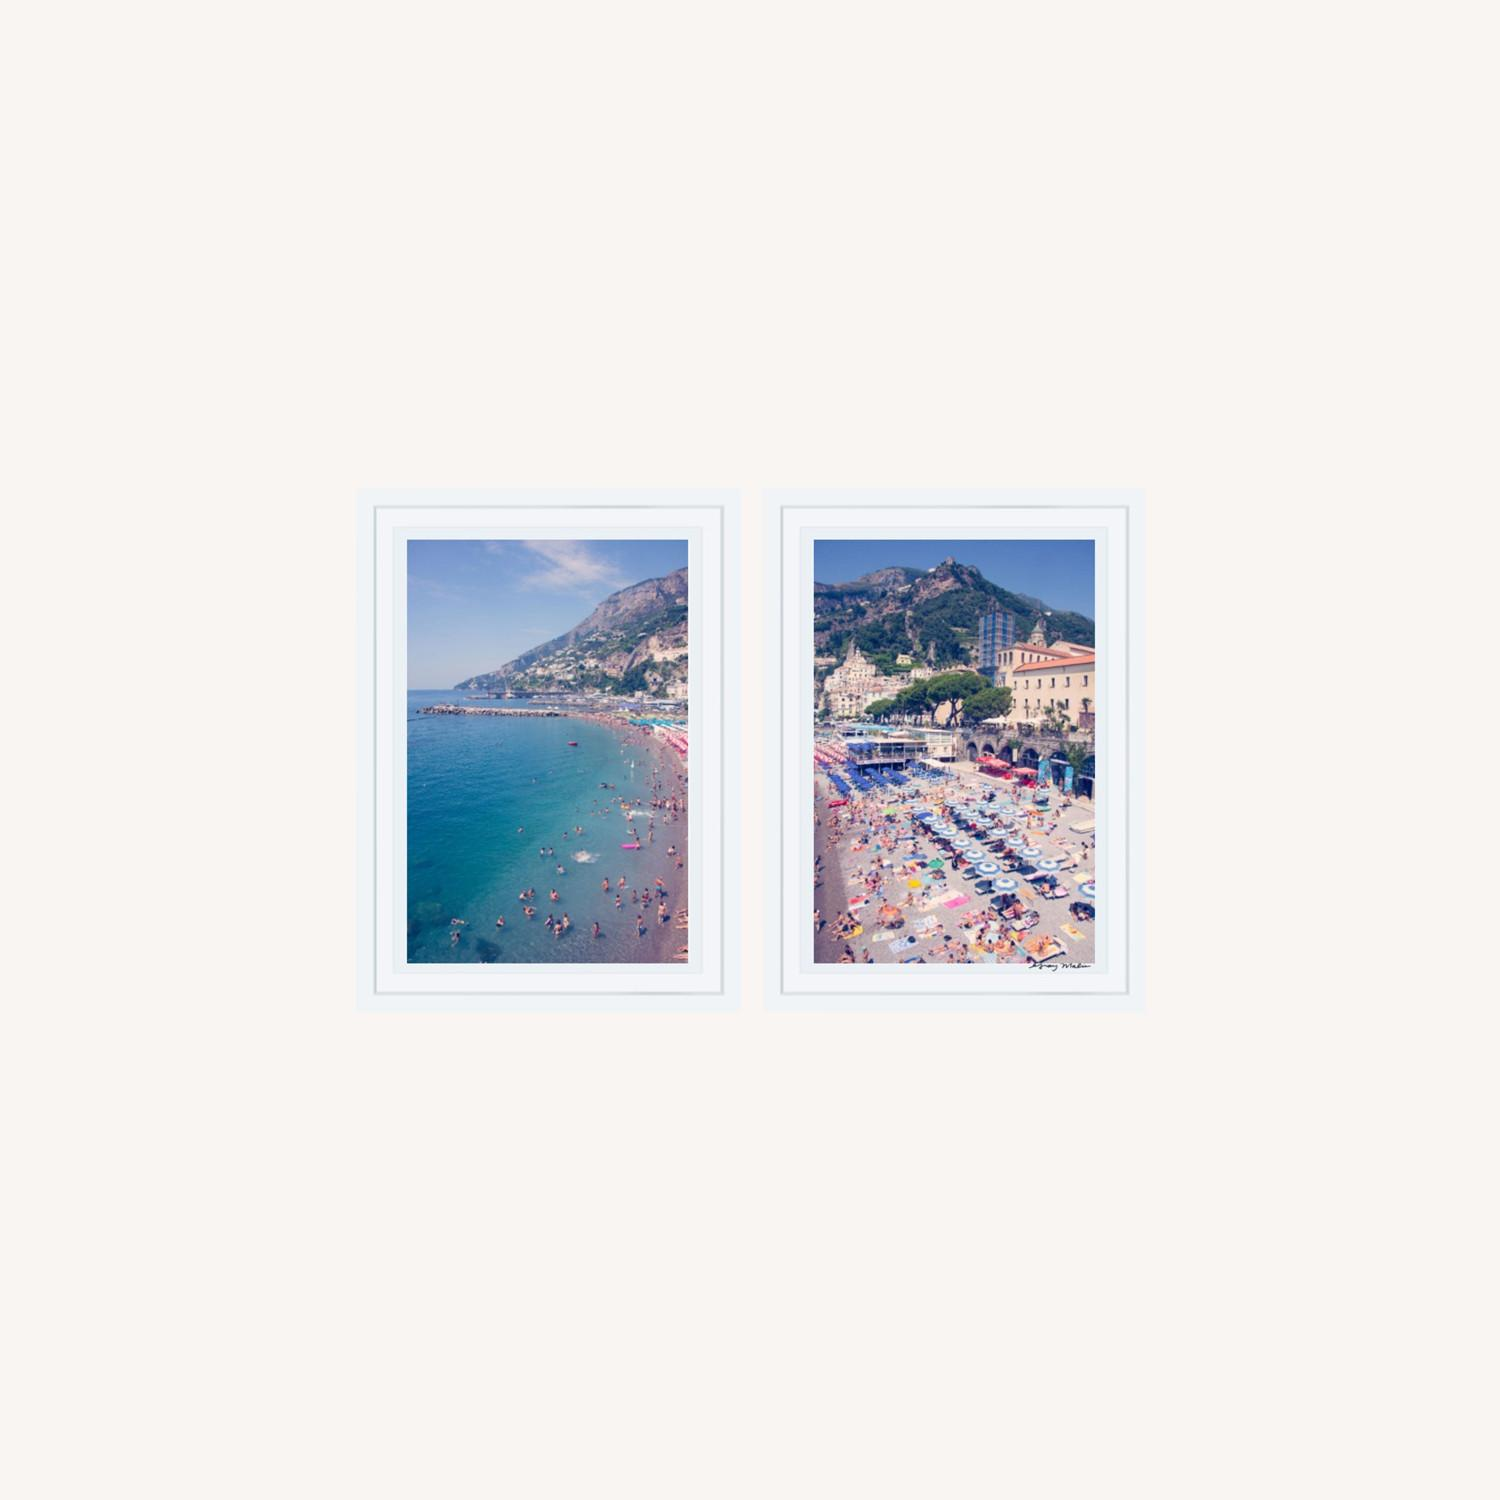 Authentic Gray Malin Positano Diptych Prints - image-0